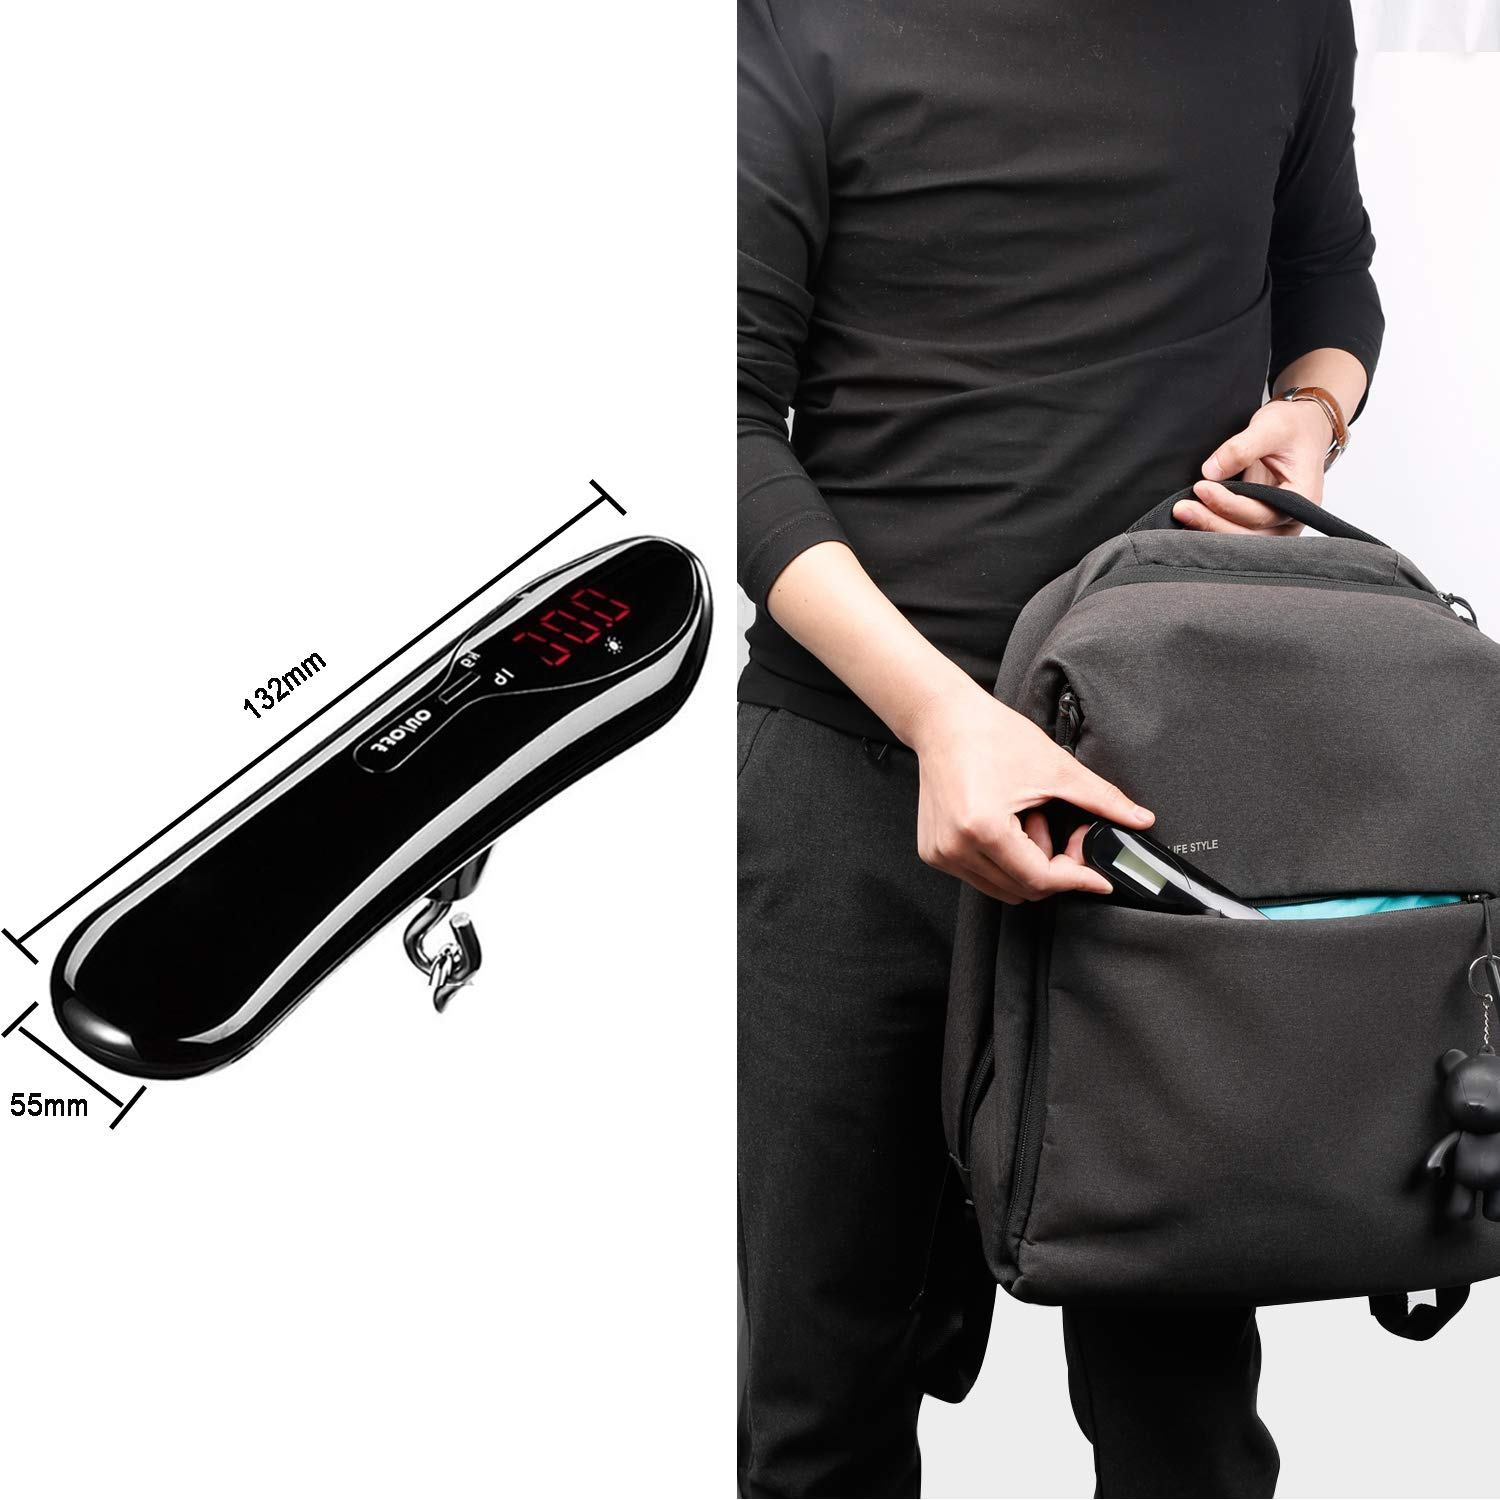 110LB Portable Digital Suitcase Weighing Scale for Travel Black Luggage Scale